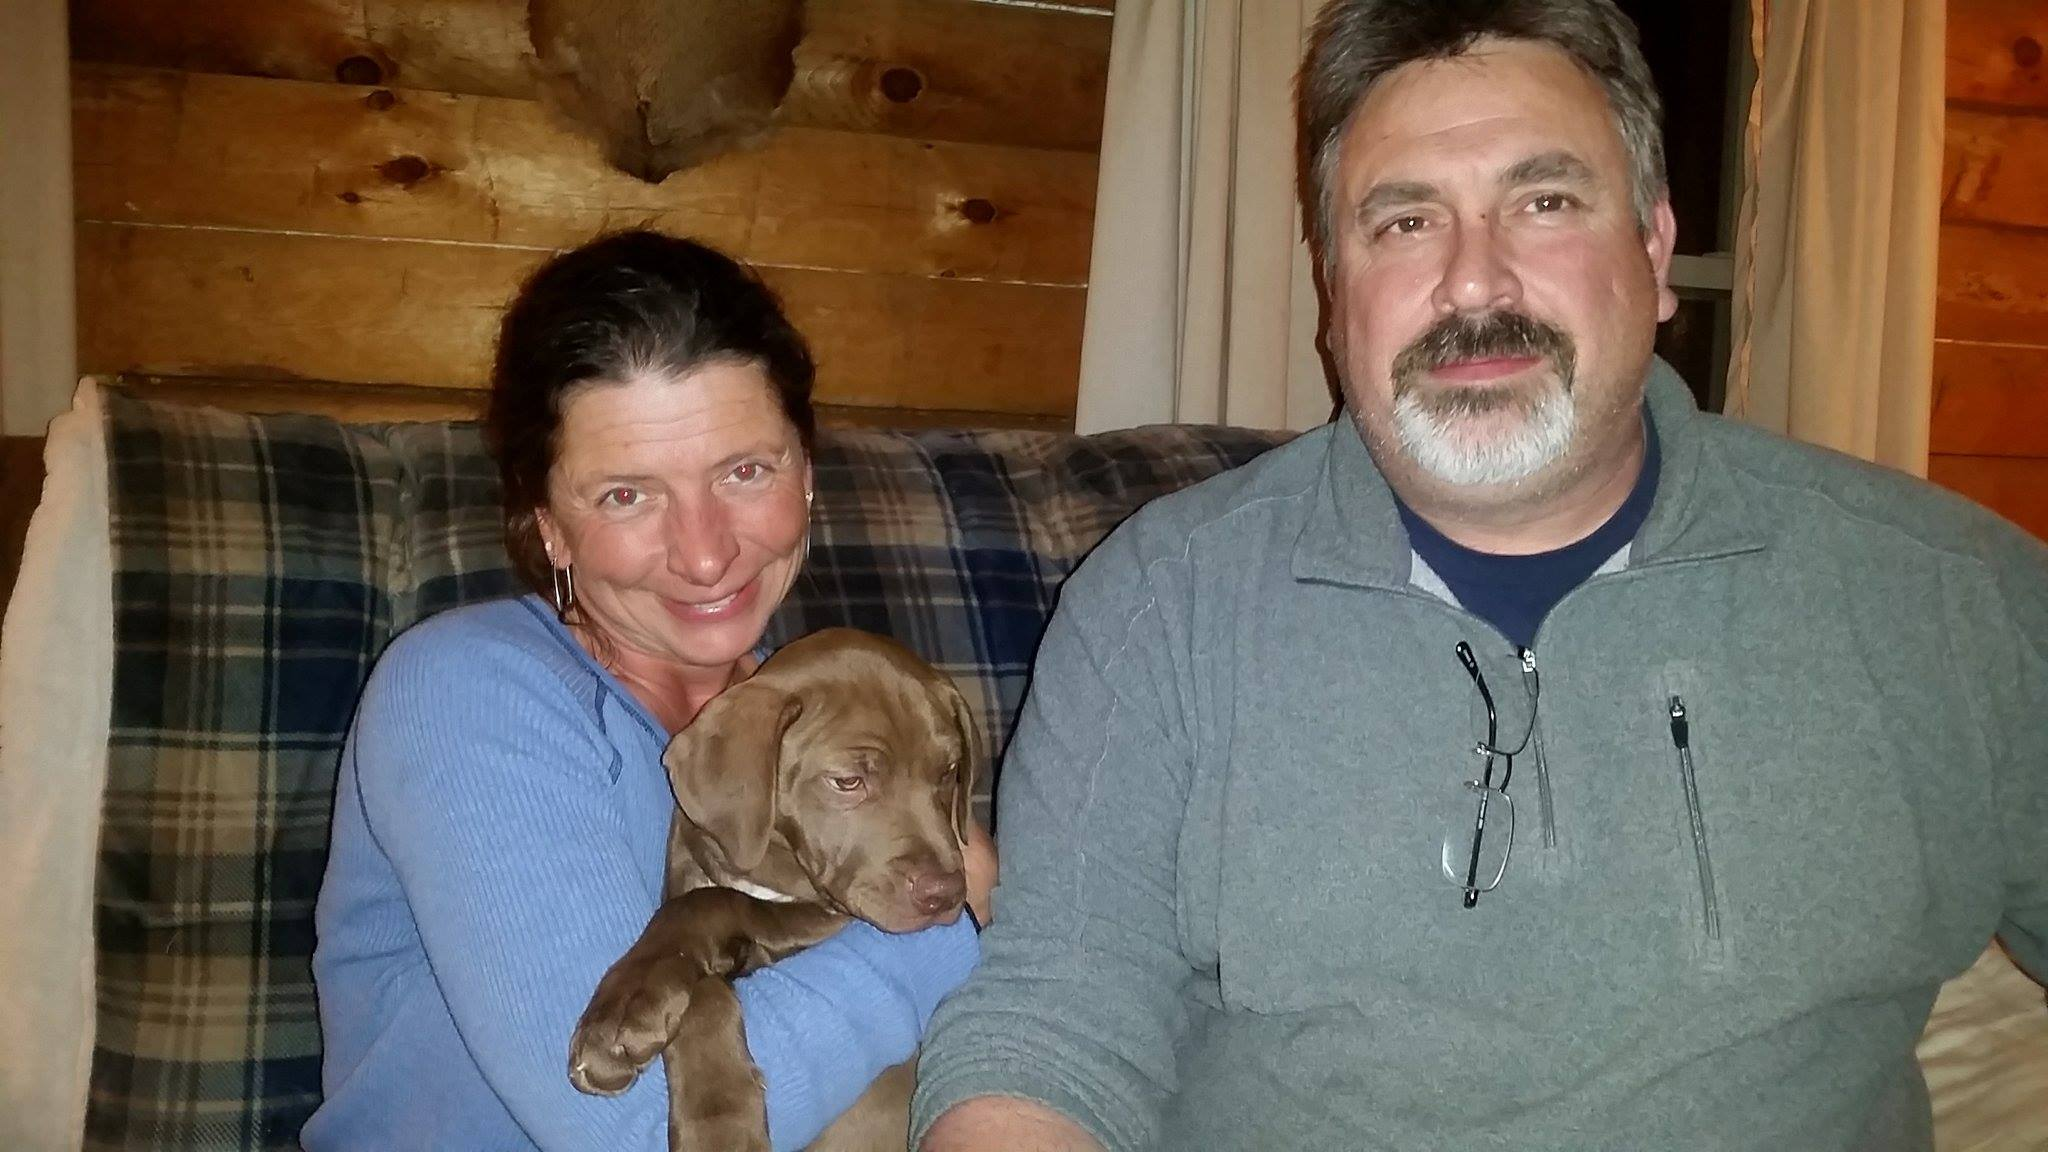 cocoa adopted